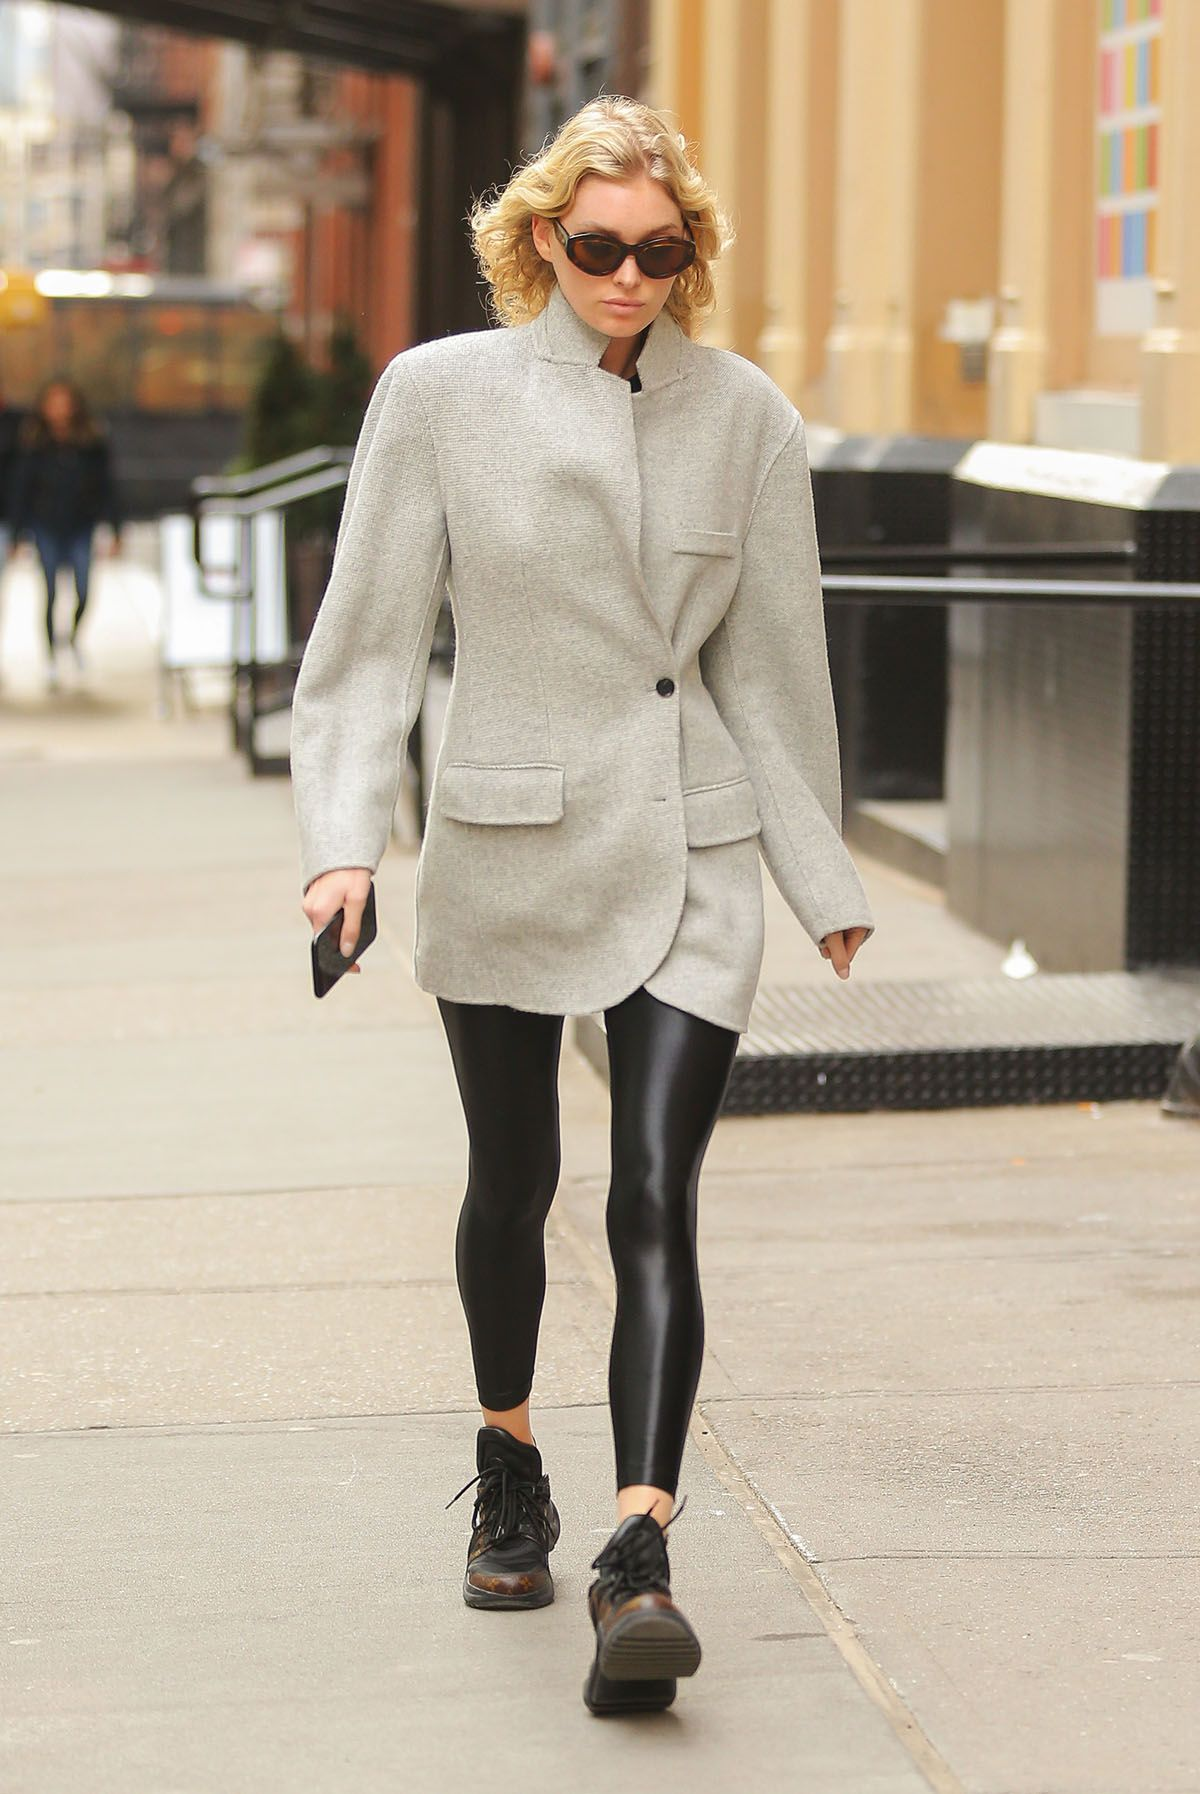 8 Simple Items You Should Own If You Wear Leggings in the Winter